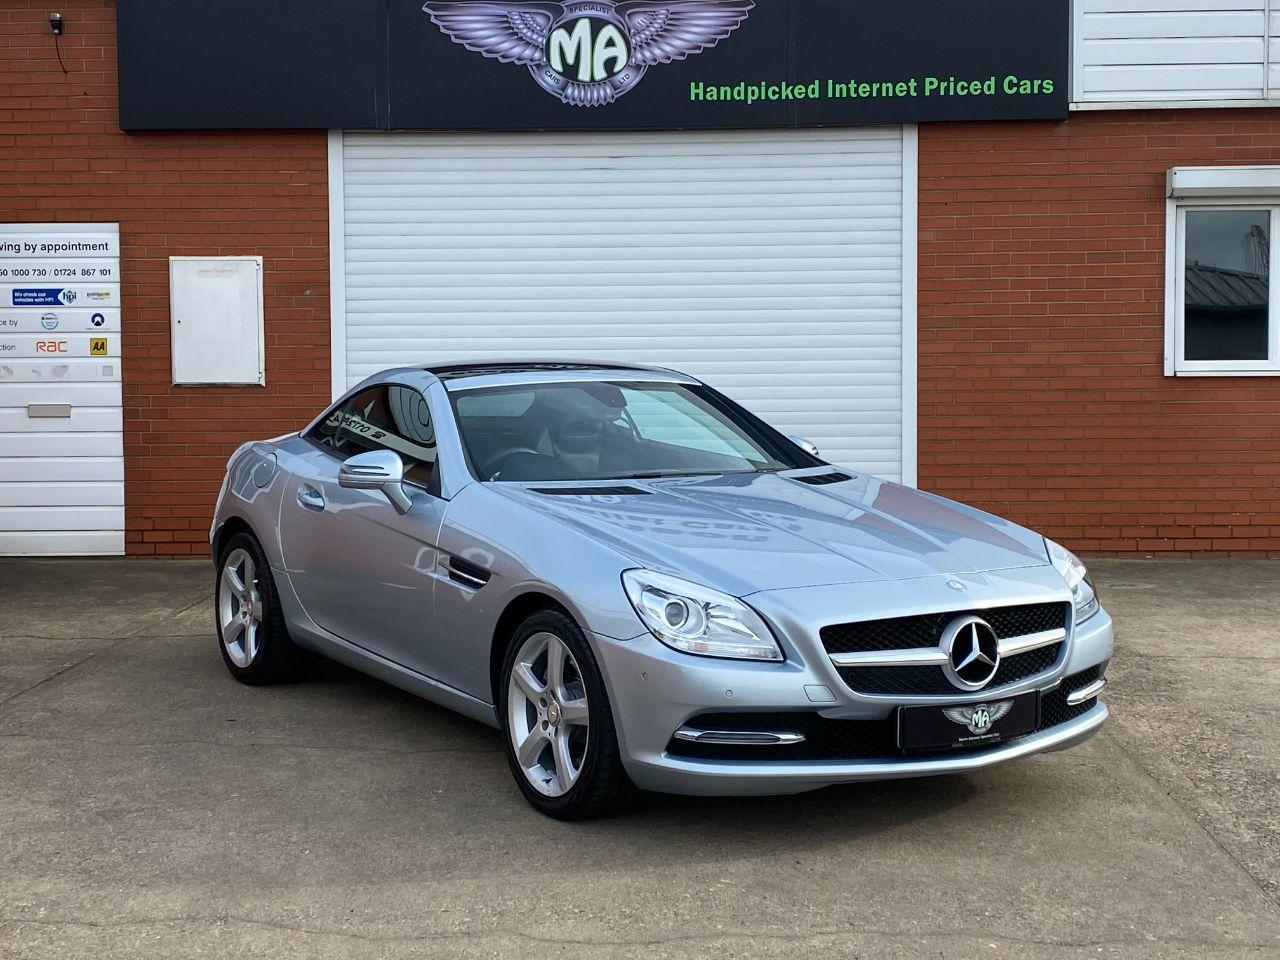 Mercedes-Benz SLK 2.1 SLK250 CDi BLUEEFFICIENCY 7G-Tronic Convertible Diesel Diamond Silver Blue Metallic